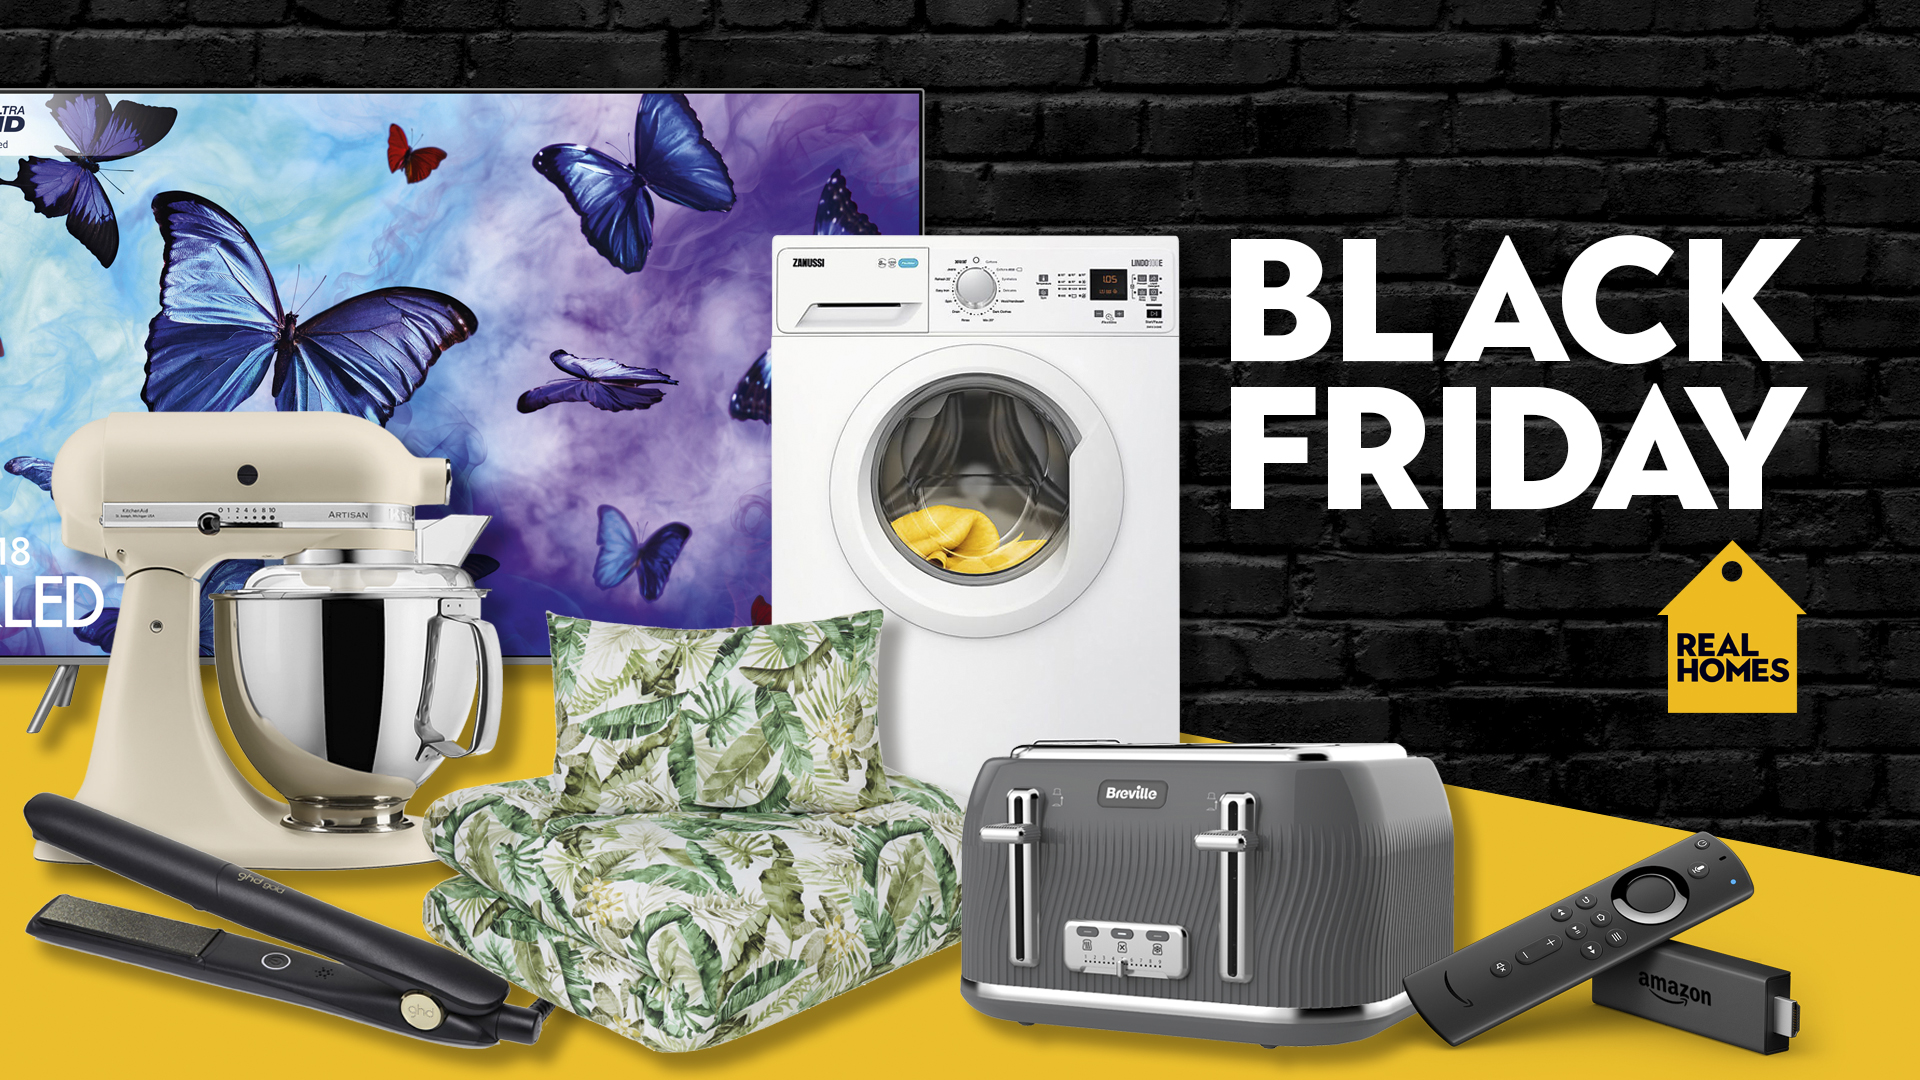 Black Friday Home Deals 2020 Top Offers From Made Amazon Target And More Real Homes